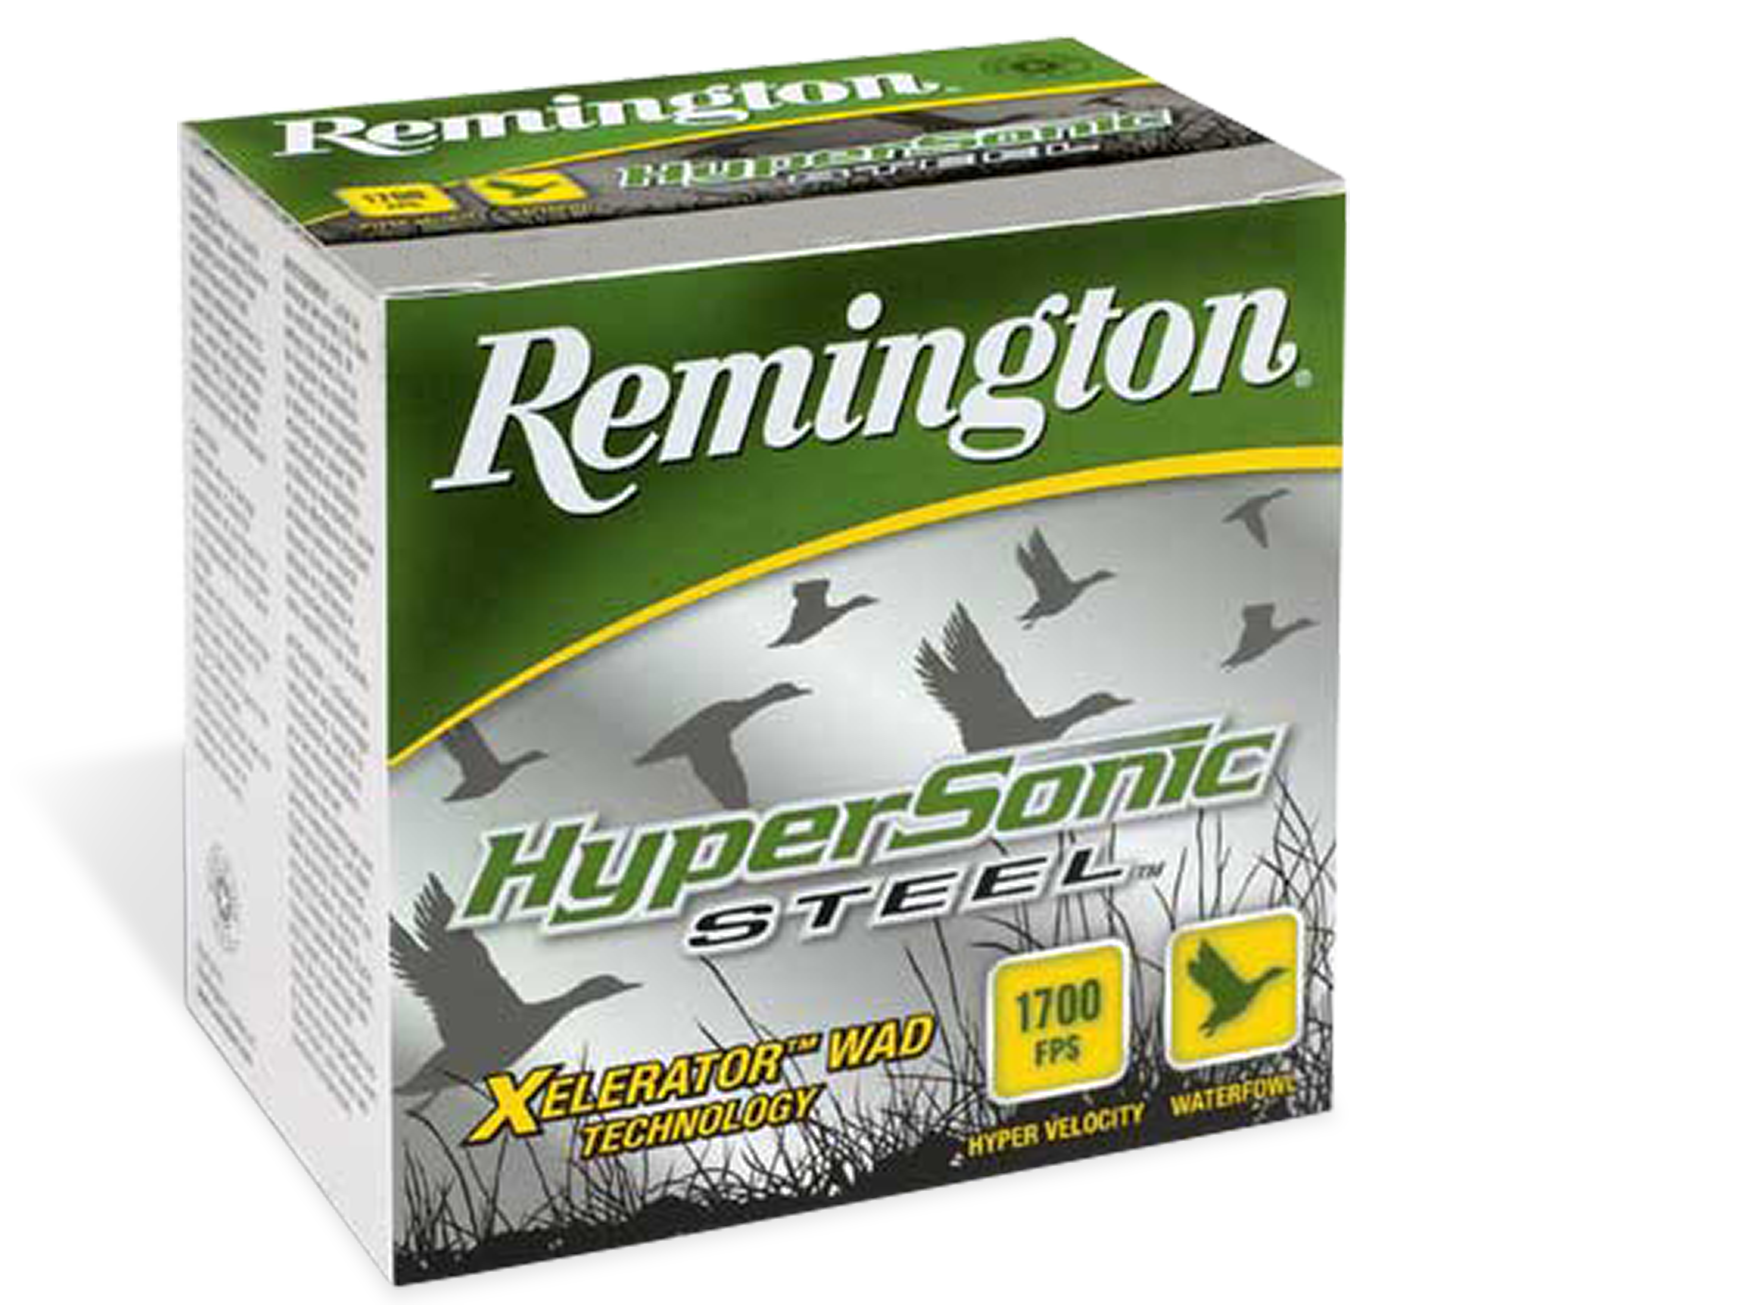 Remington HyperSonic Waterfowl Ammunition 10 Gauge 3-1/2